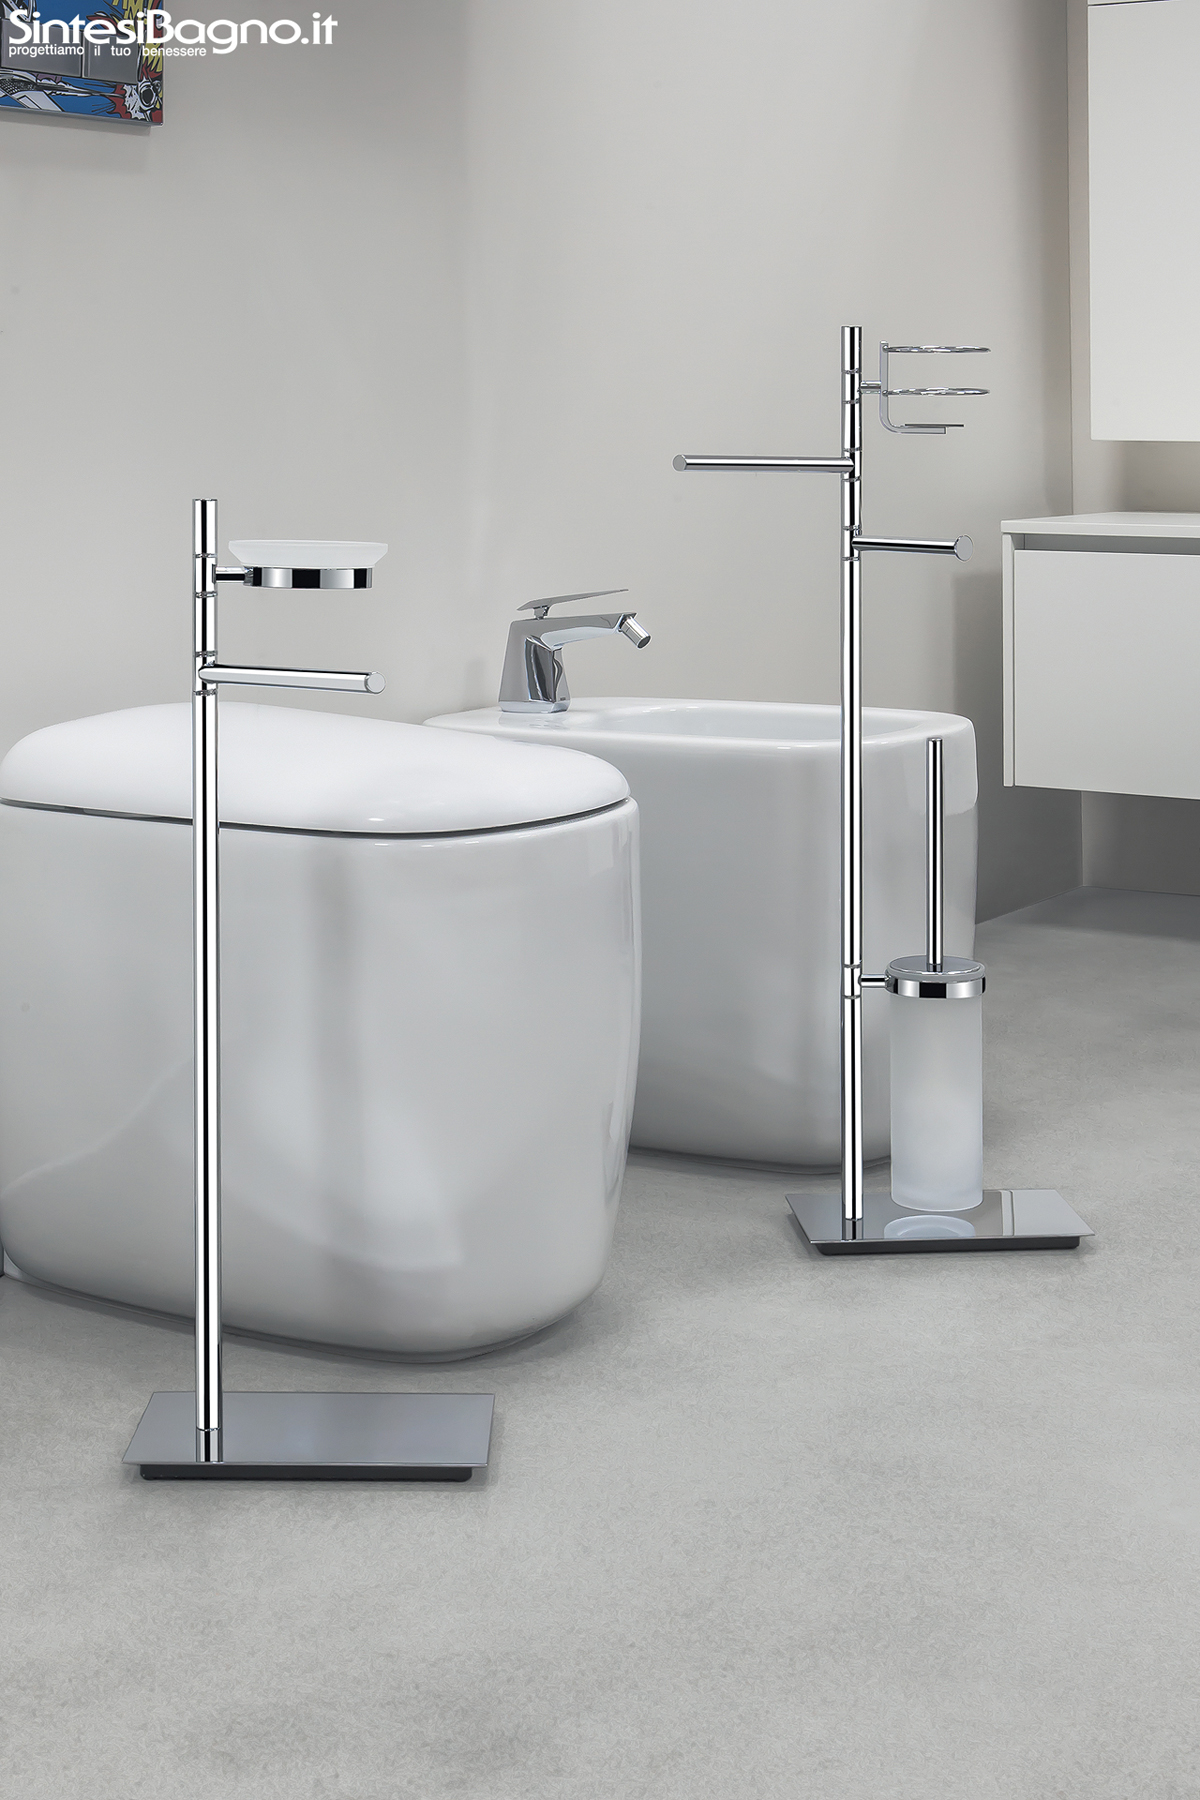 Piantane e colonne serie square di colombo design for Design accessori bagno